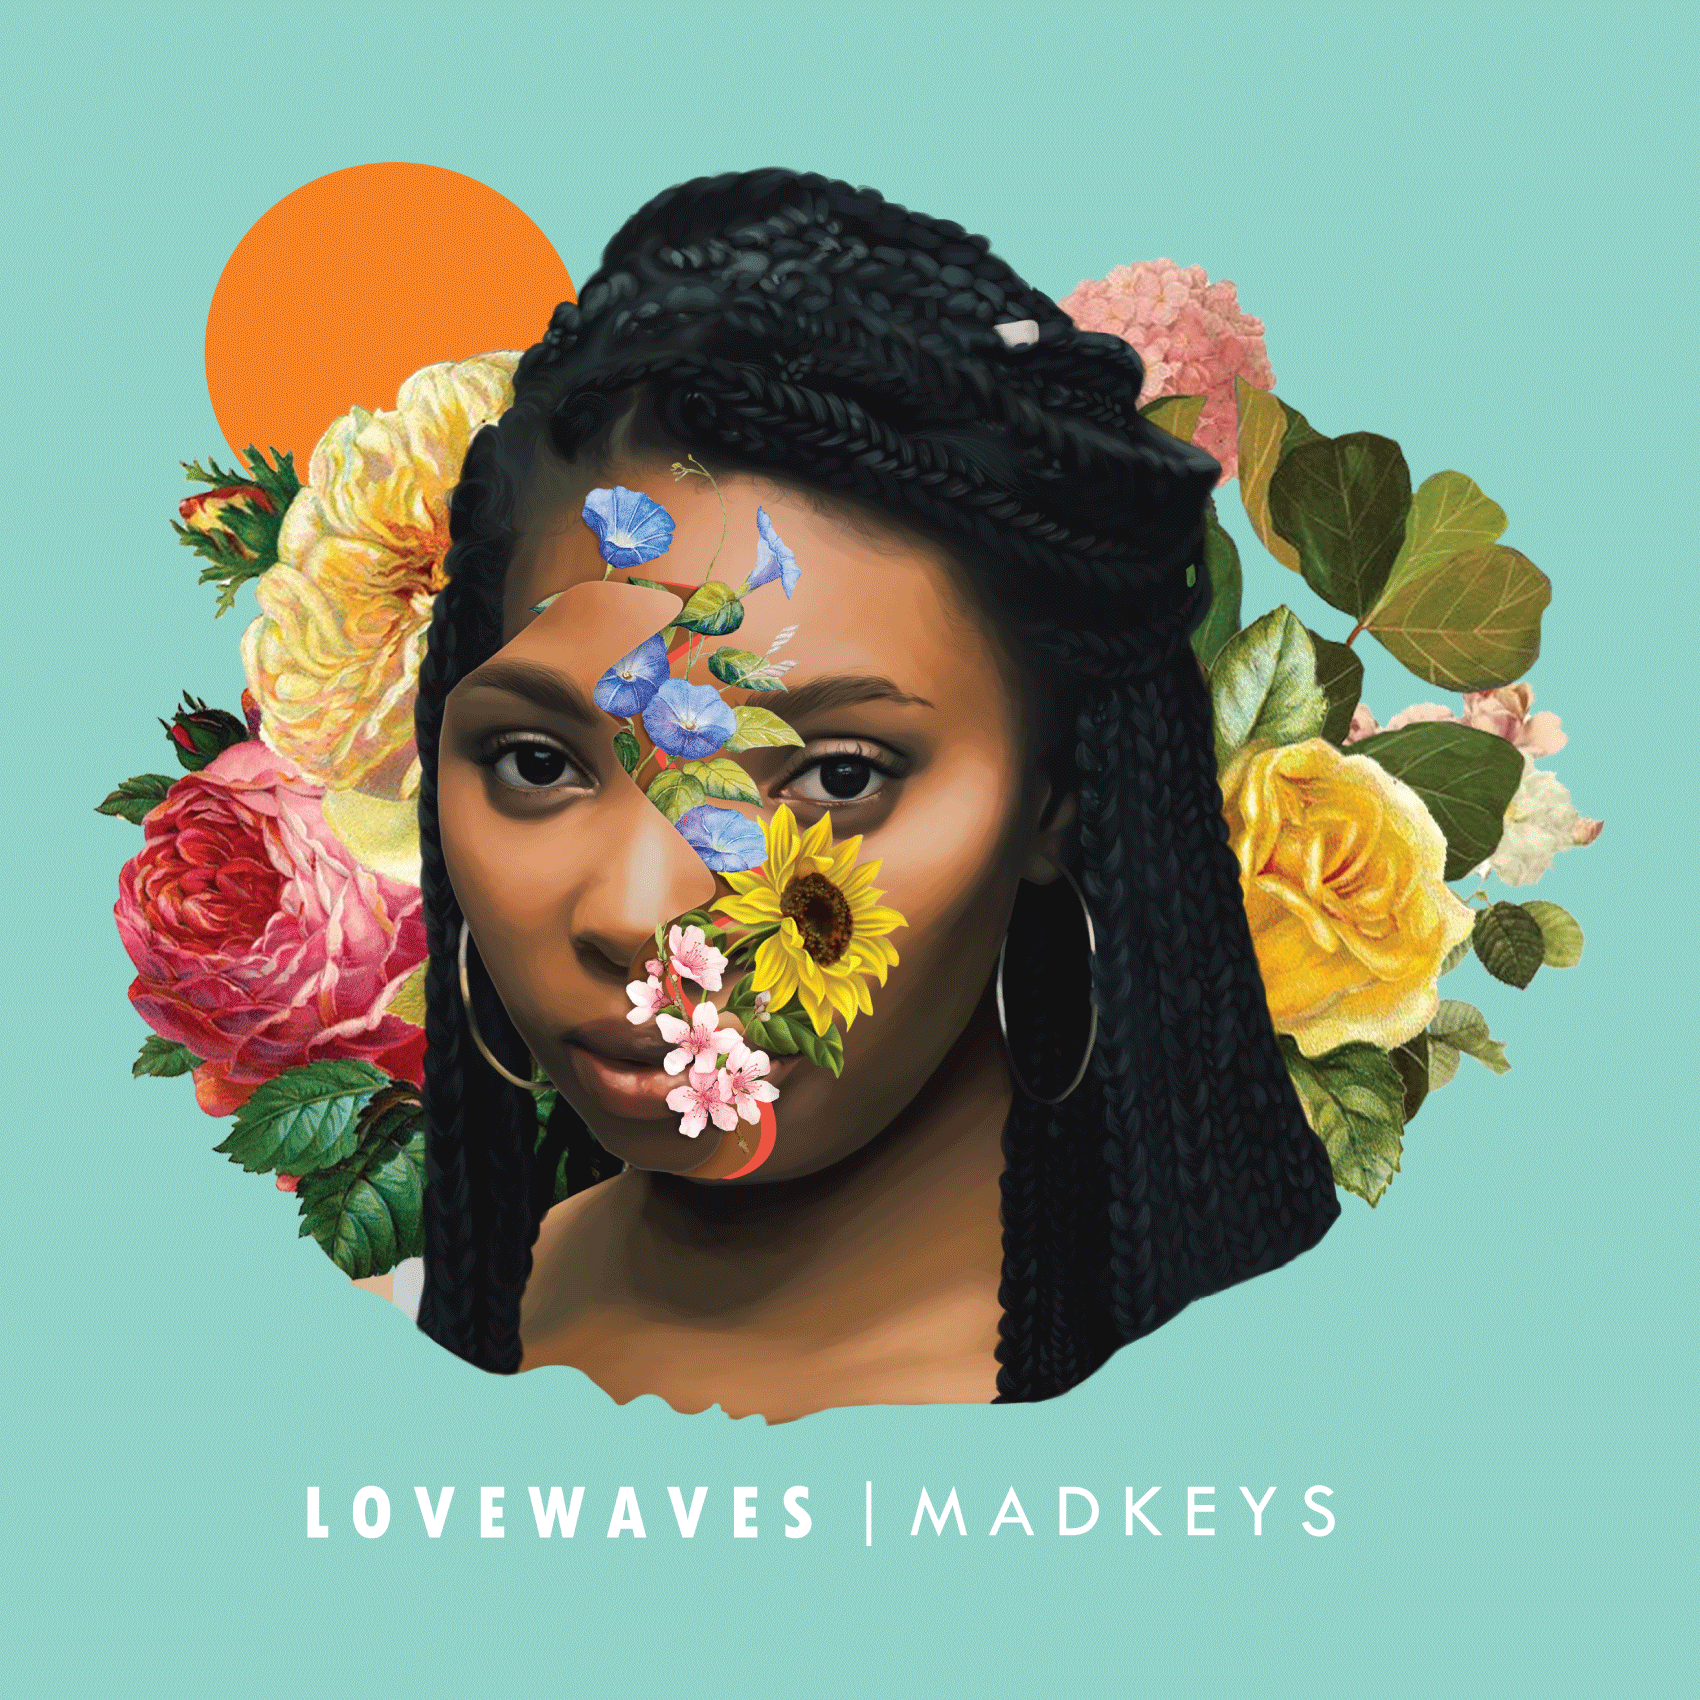 """LoveWaves EP - 2017   """"With love, it's possible."""" This project is a celebration of overcoming lack of identity and self-confidence, and many other ills. God reestablished my passion for music, and my fiancé, Chelsea (pictured in the artwork), encouraged and supported me through this. I've dedicated this EP to her."""